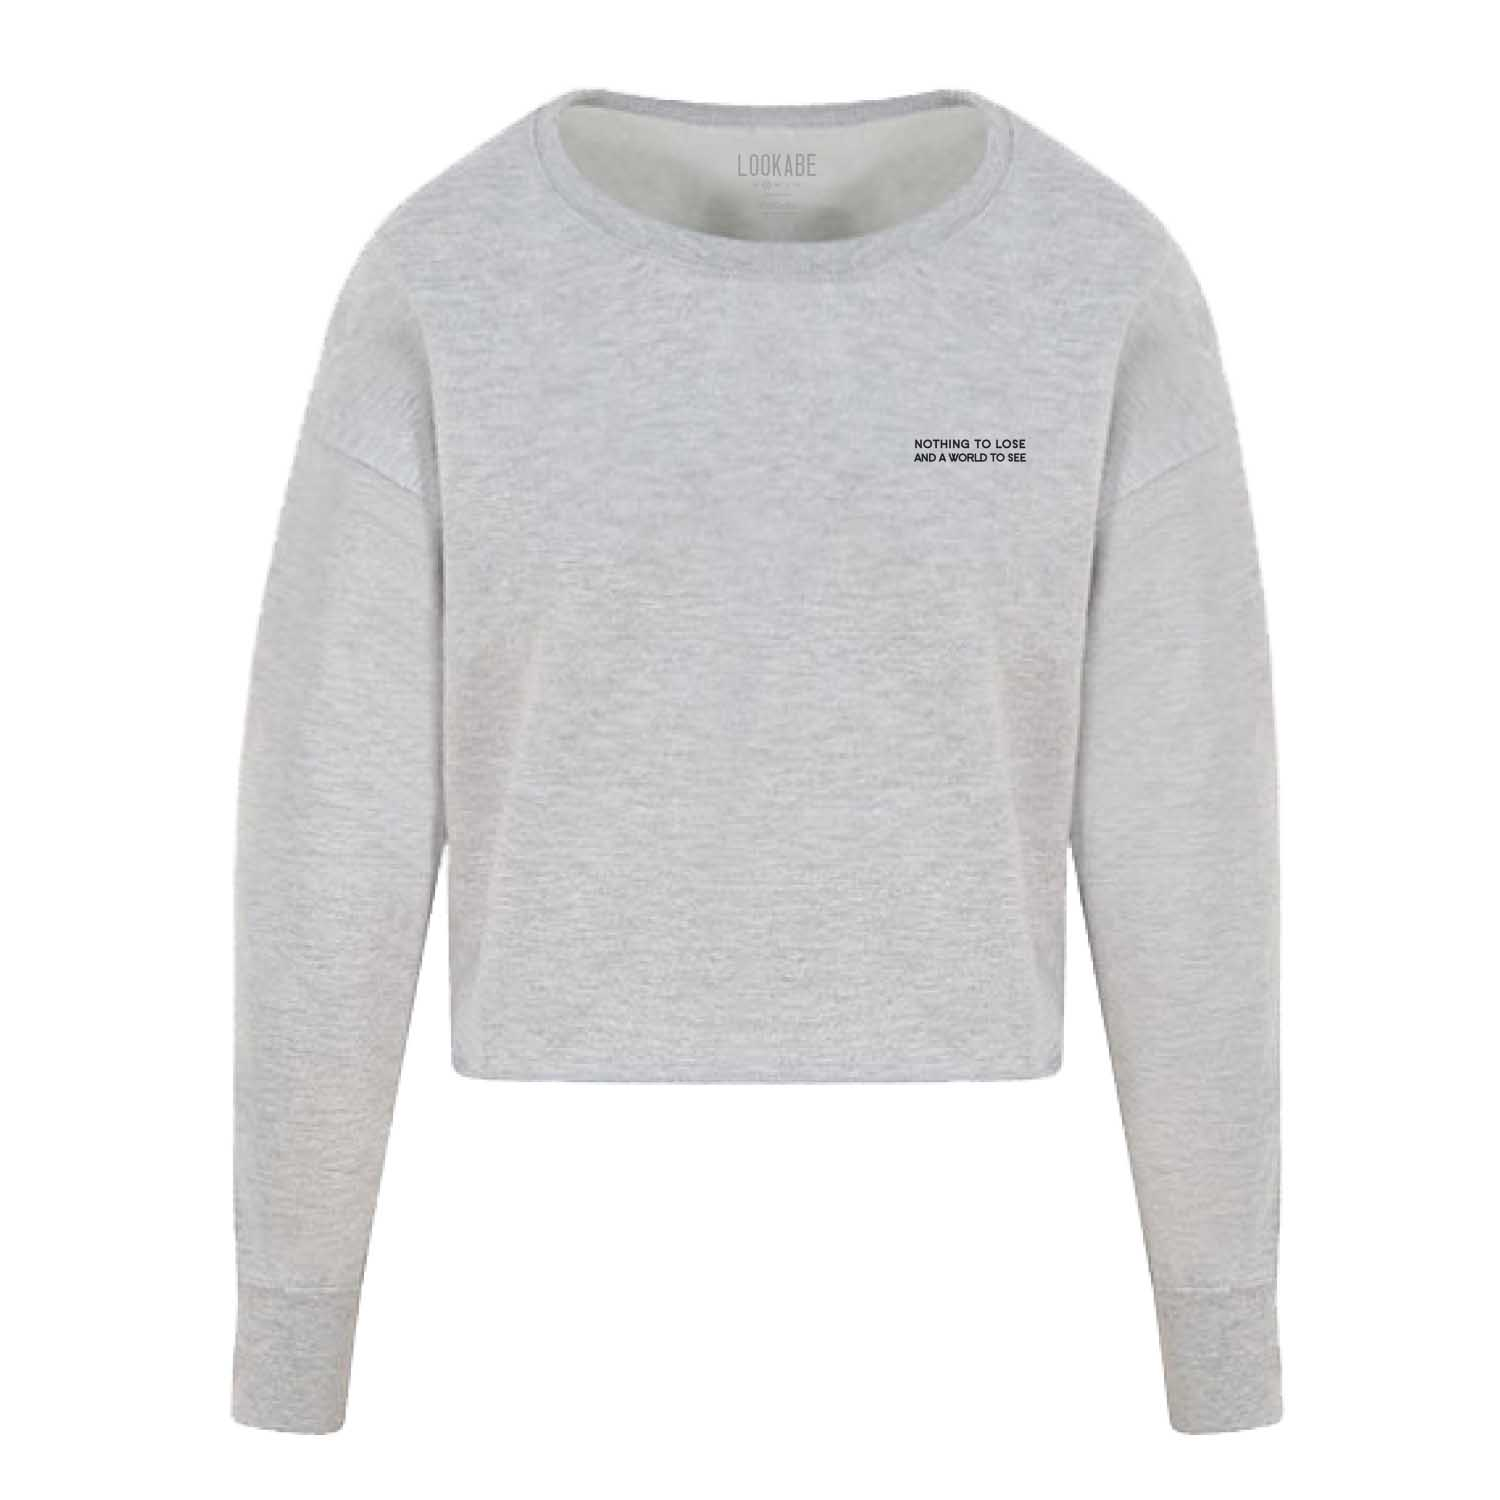 Crop Sweater - Nothing to lose